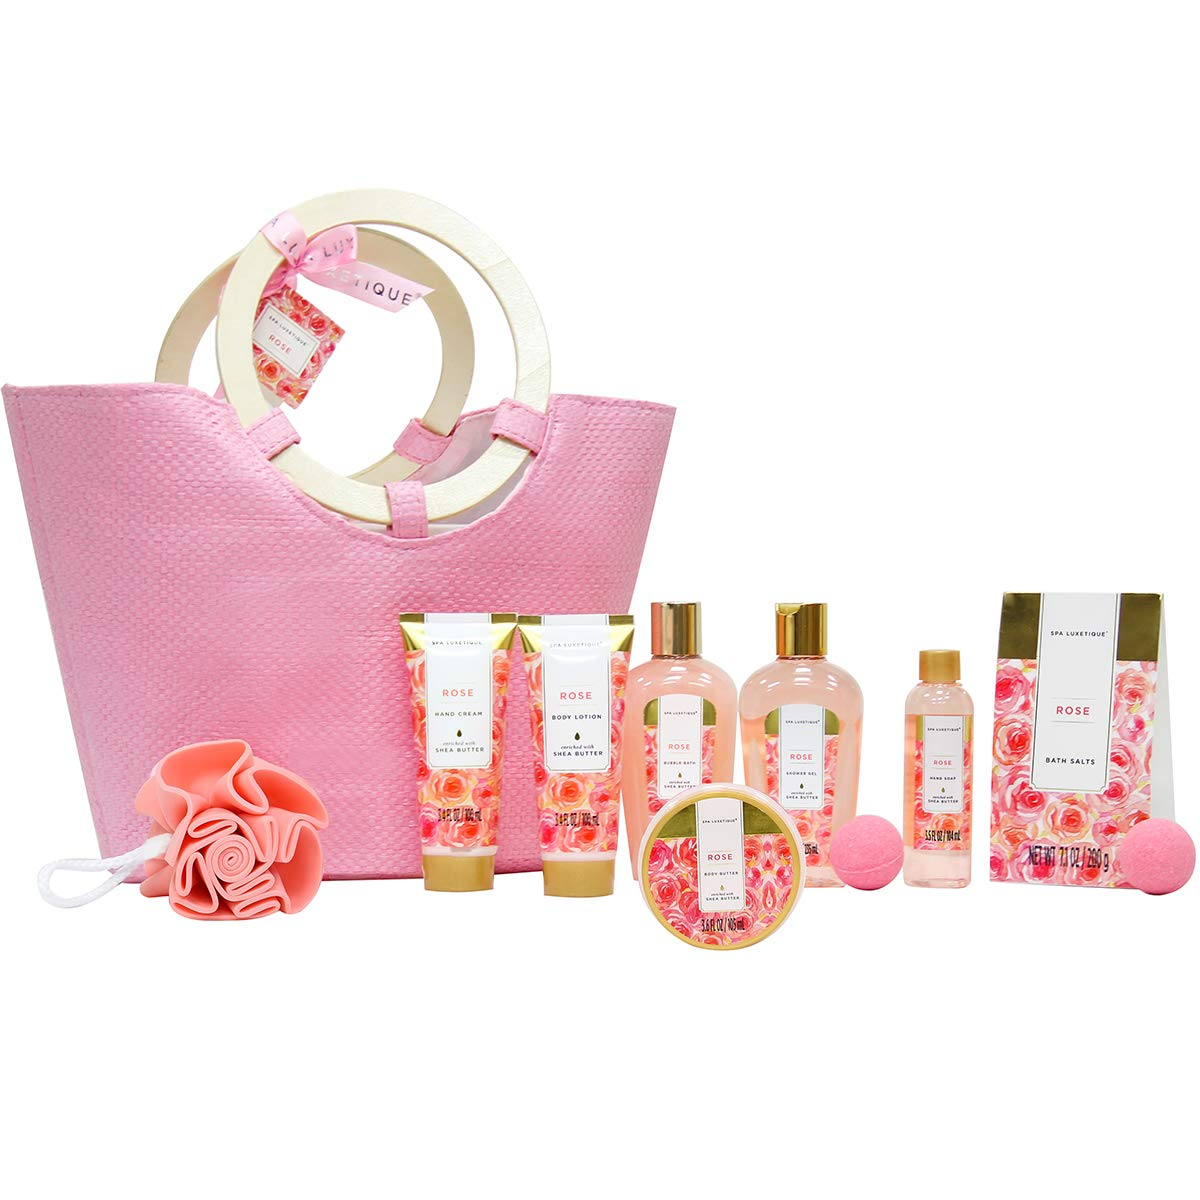 Spa Luxetique Bath Spa Gift Set Rose Fragrance, Luxury 10pc Bath and Body Gift Basket for Women, Premium Home Spa Gift Kit with Bath Salts, Lotion, Shower Gel, Body Butter, Best Gift Set for Women.